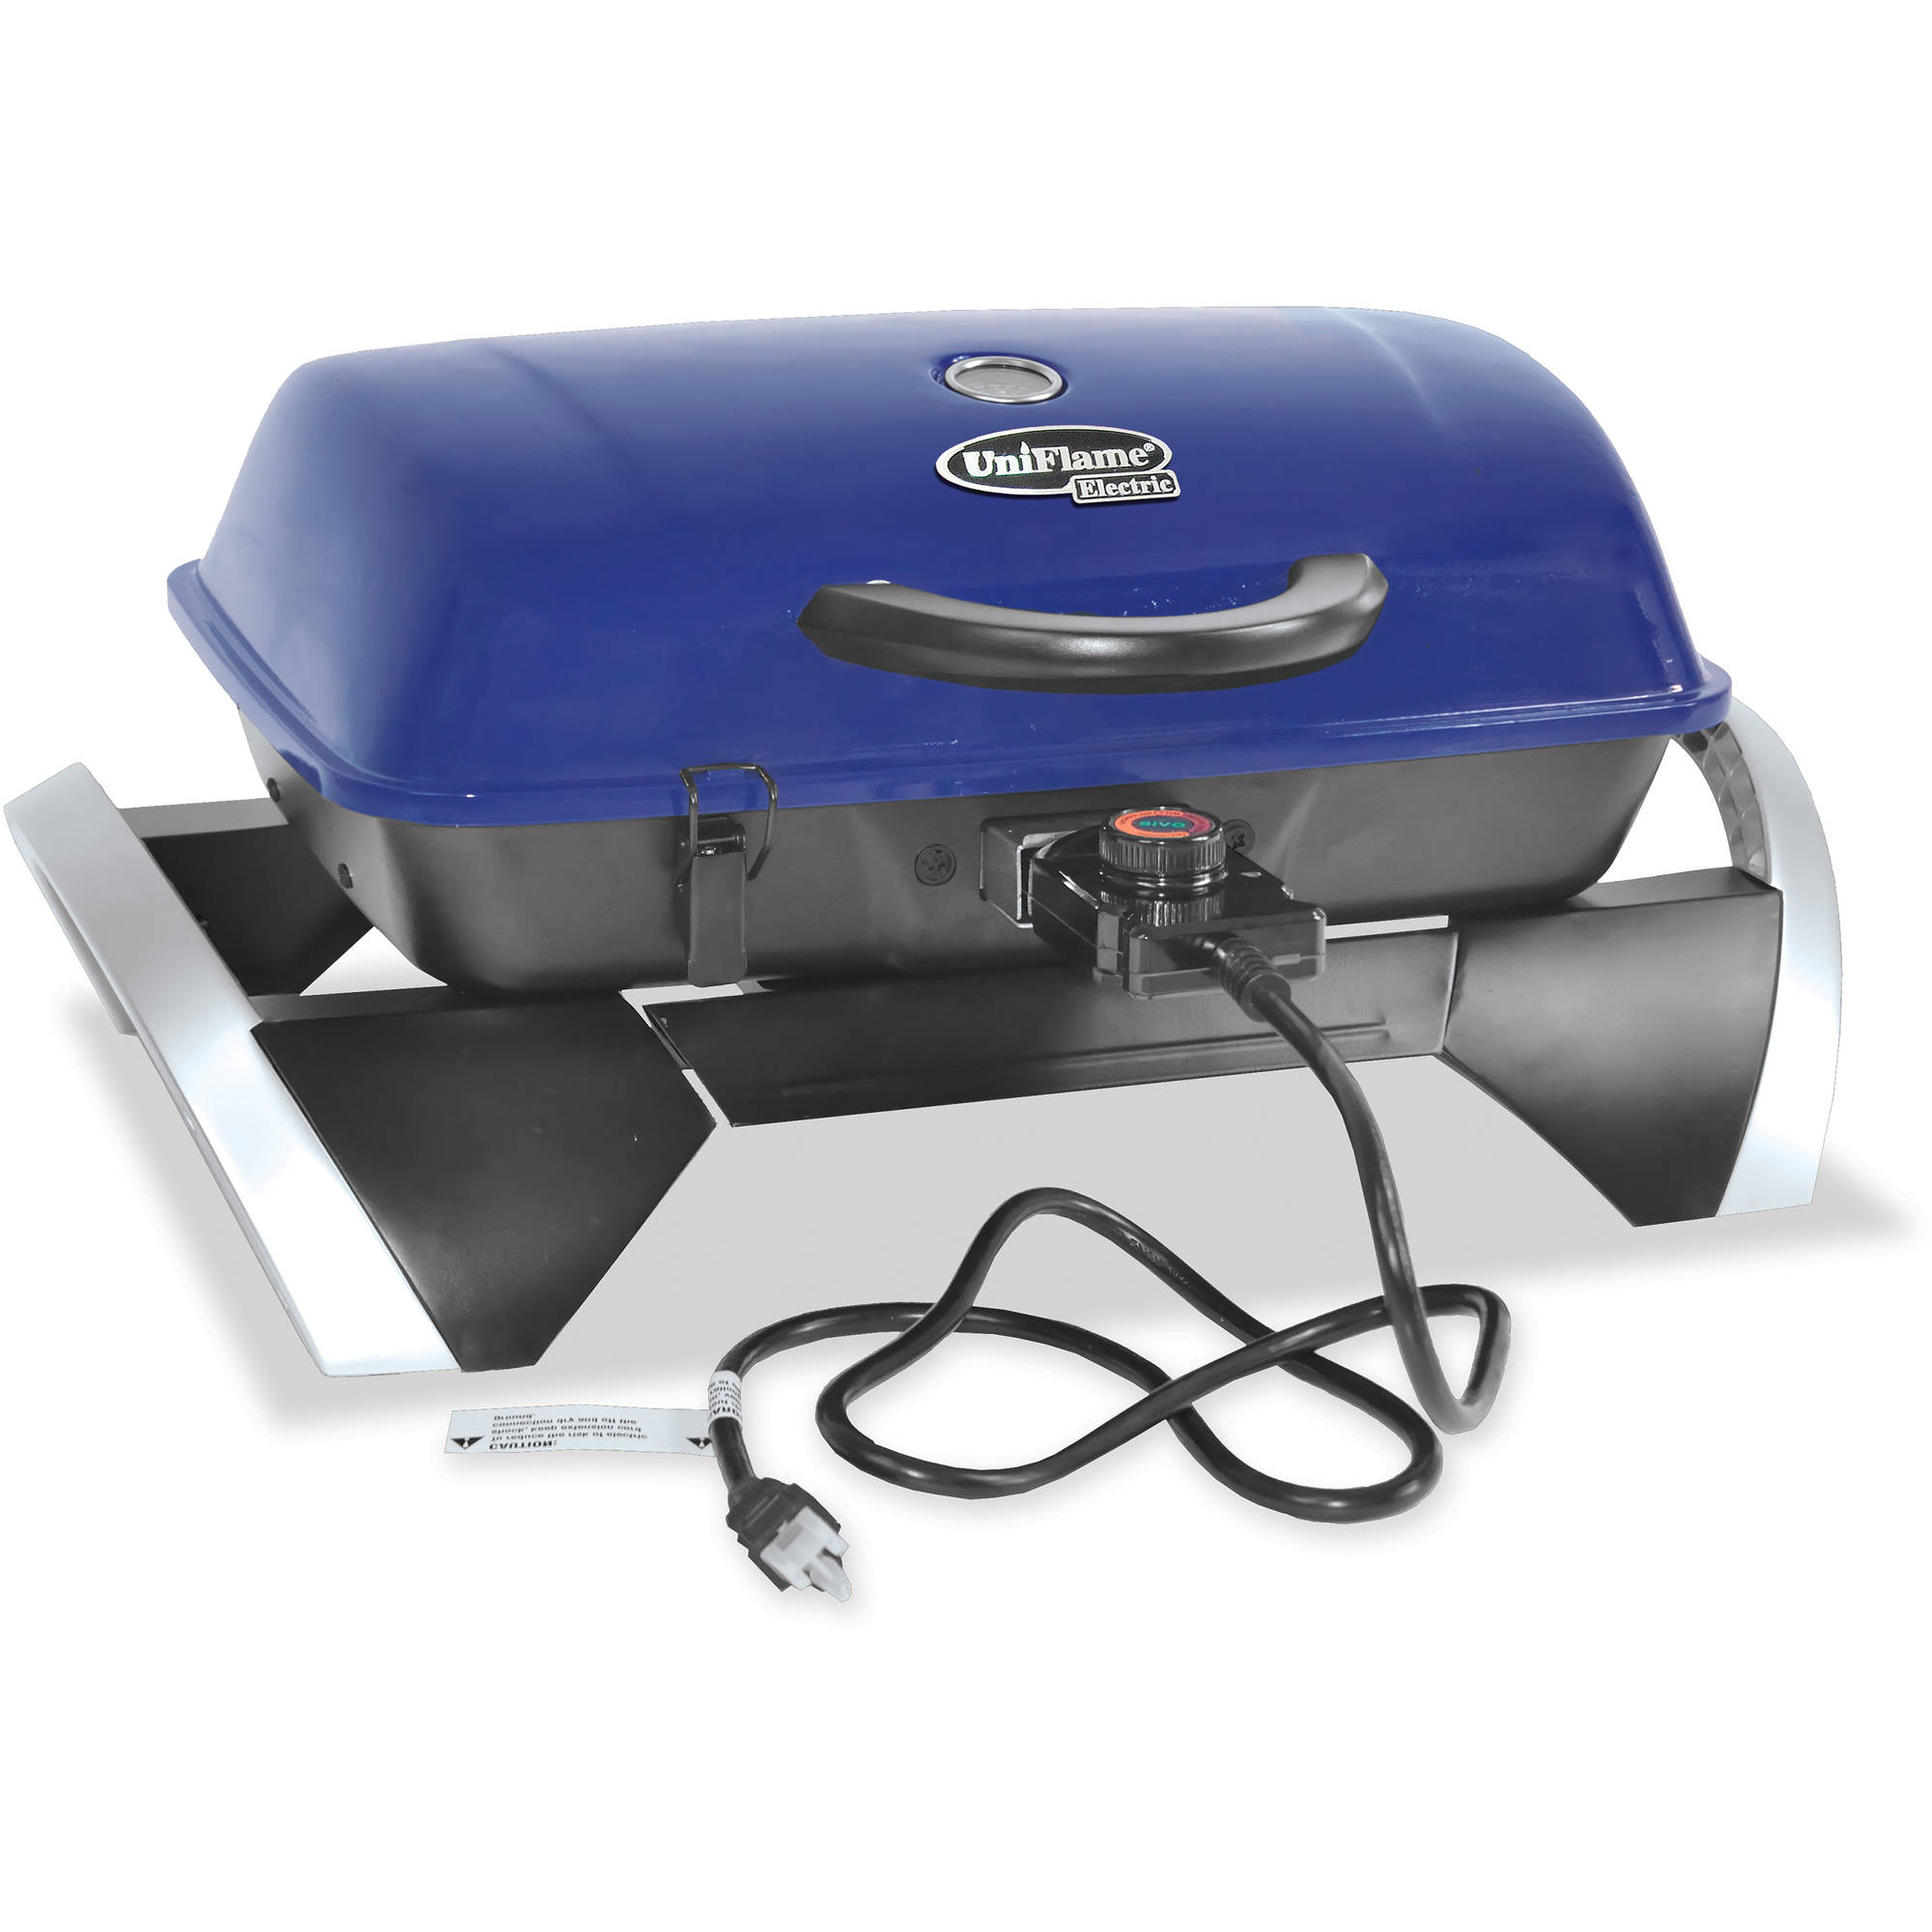 Uniflame Electric Grill   Walmart.com